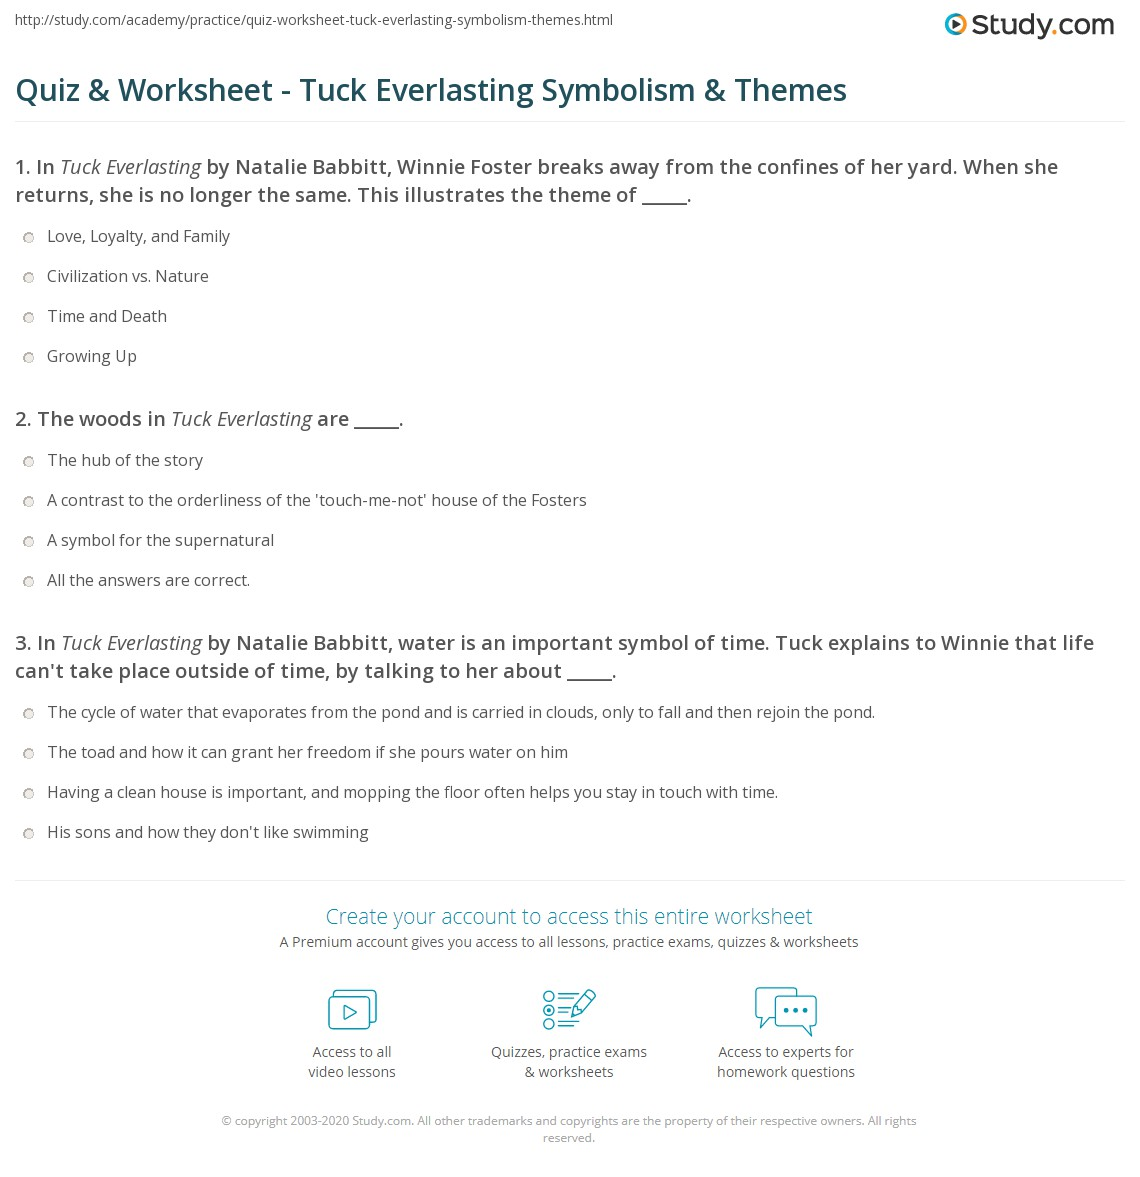 quiz worksheet tuck everlasting symbolism themes. Black Bedroom Furniture Sets. Home Design Ideas